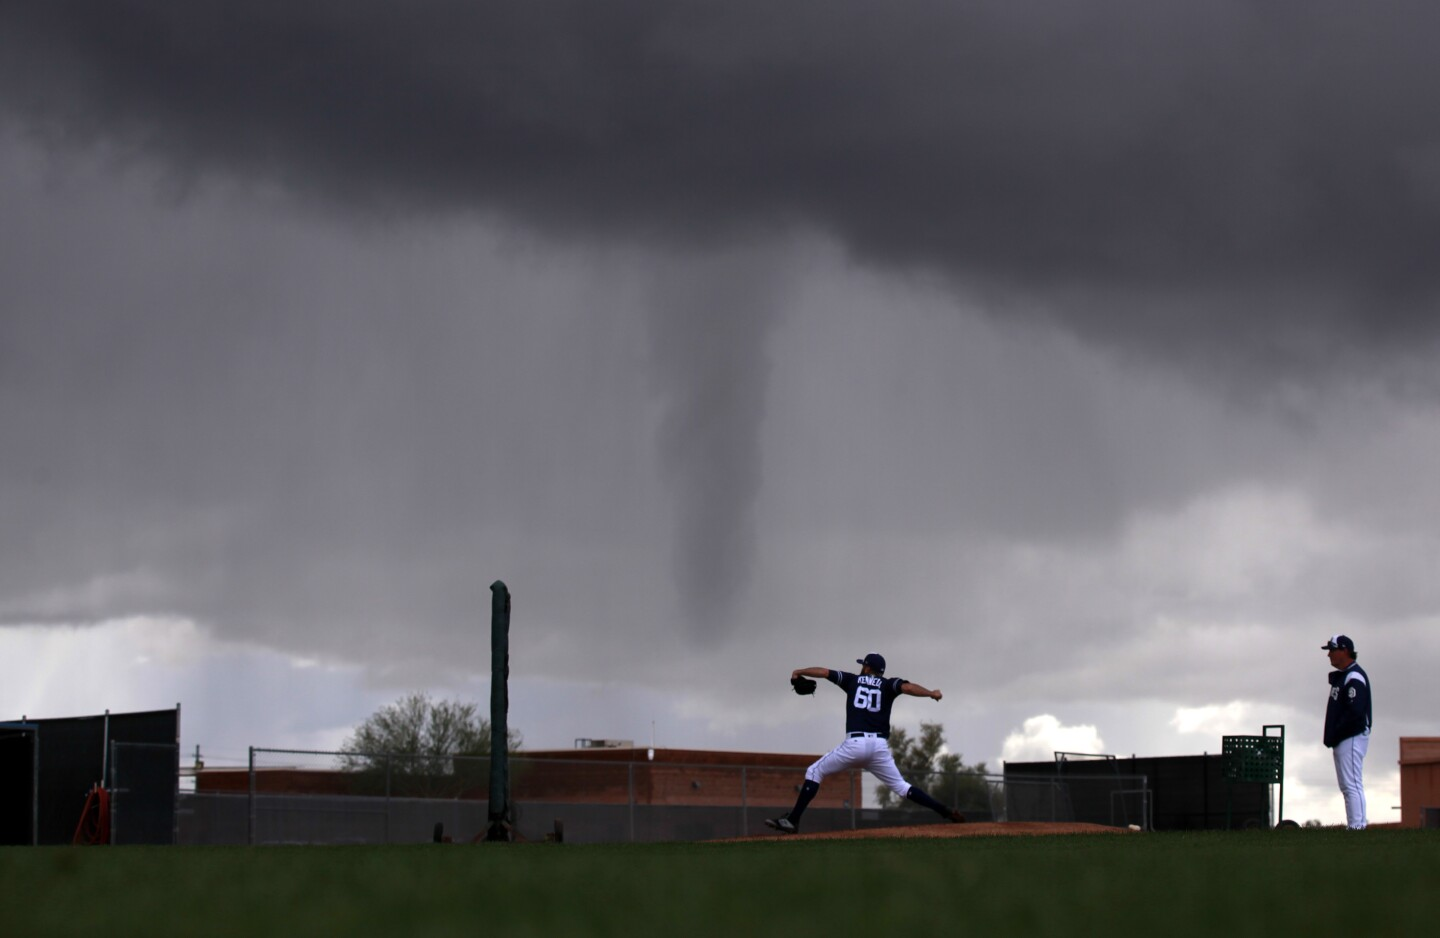 San Diego Padres pitcher Brett Kennedy throws as a funnel cloud appears off in the distance during a spring training practice on Feb. 22, 2019.